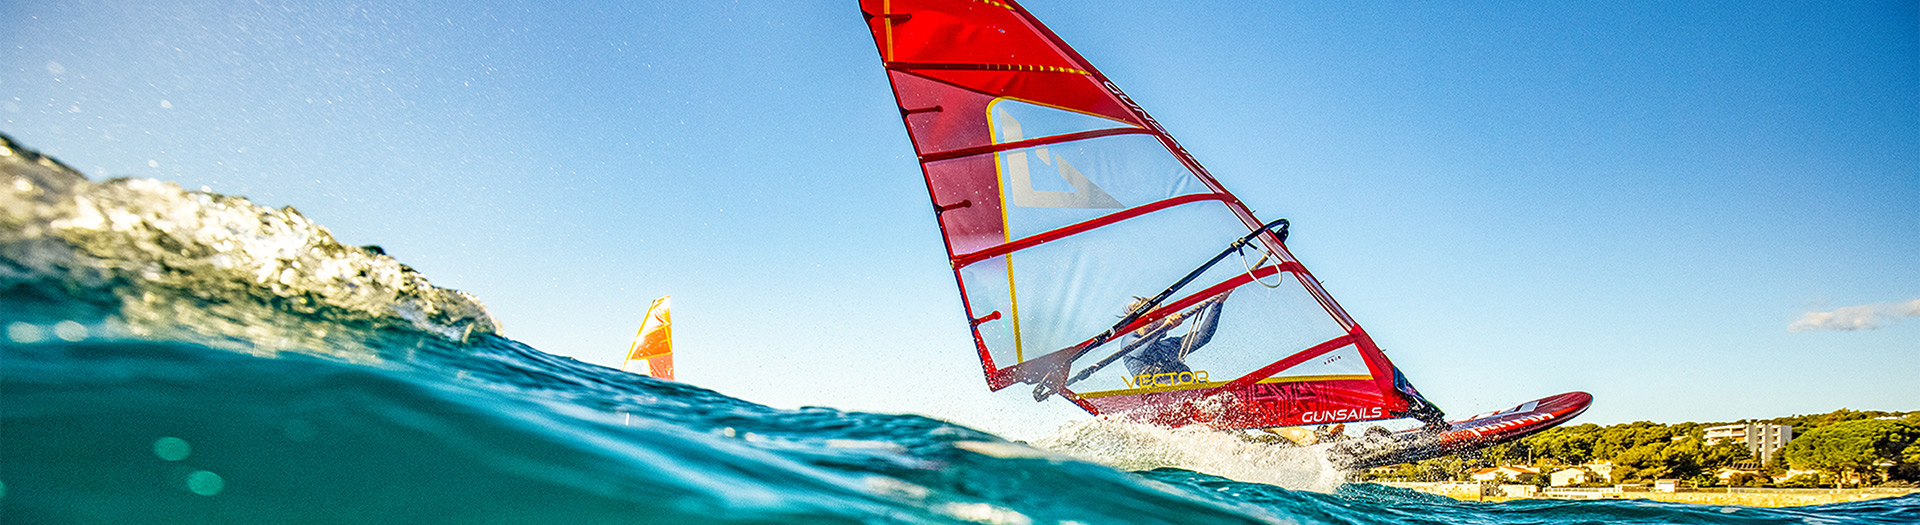 windsurf segel